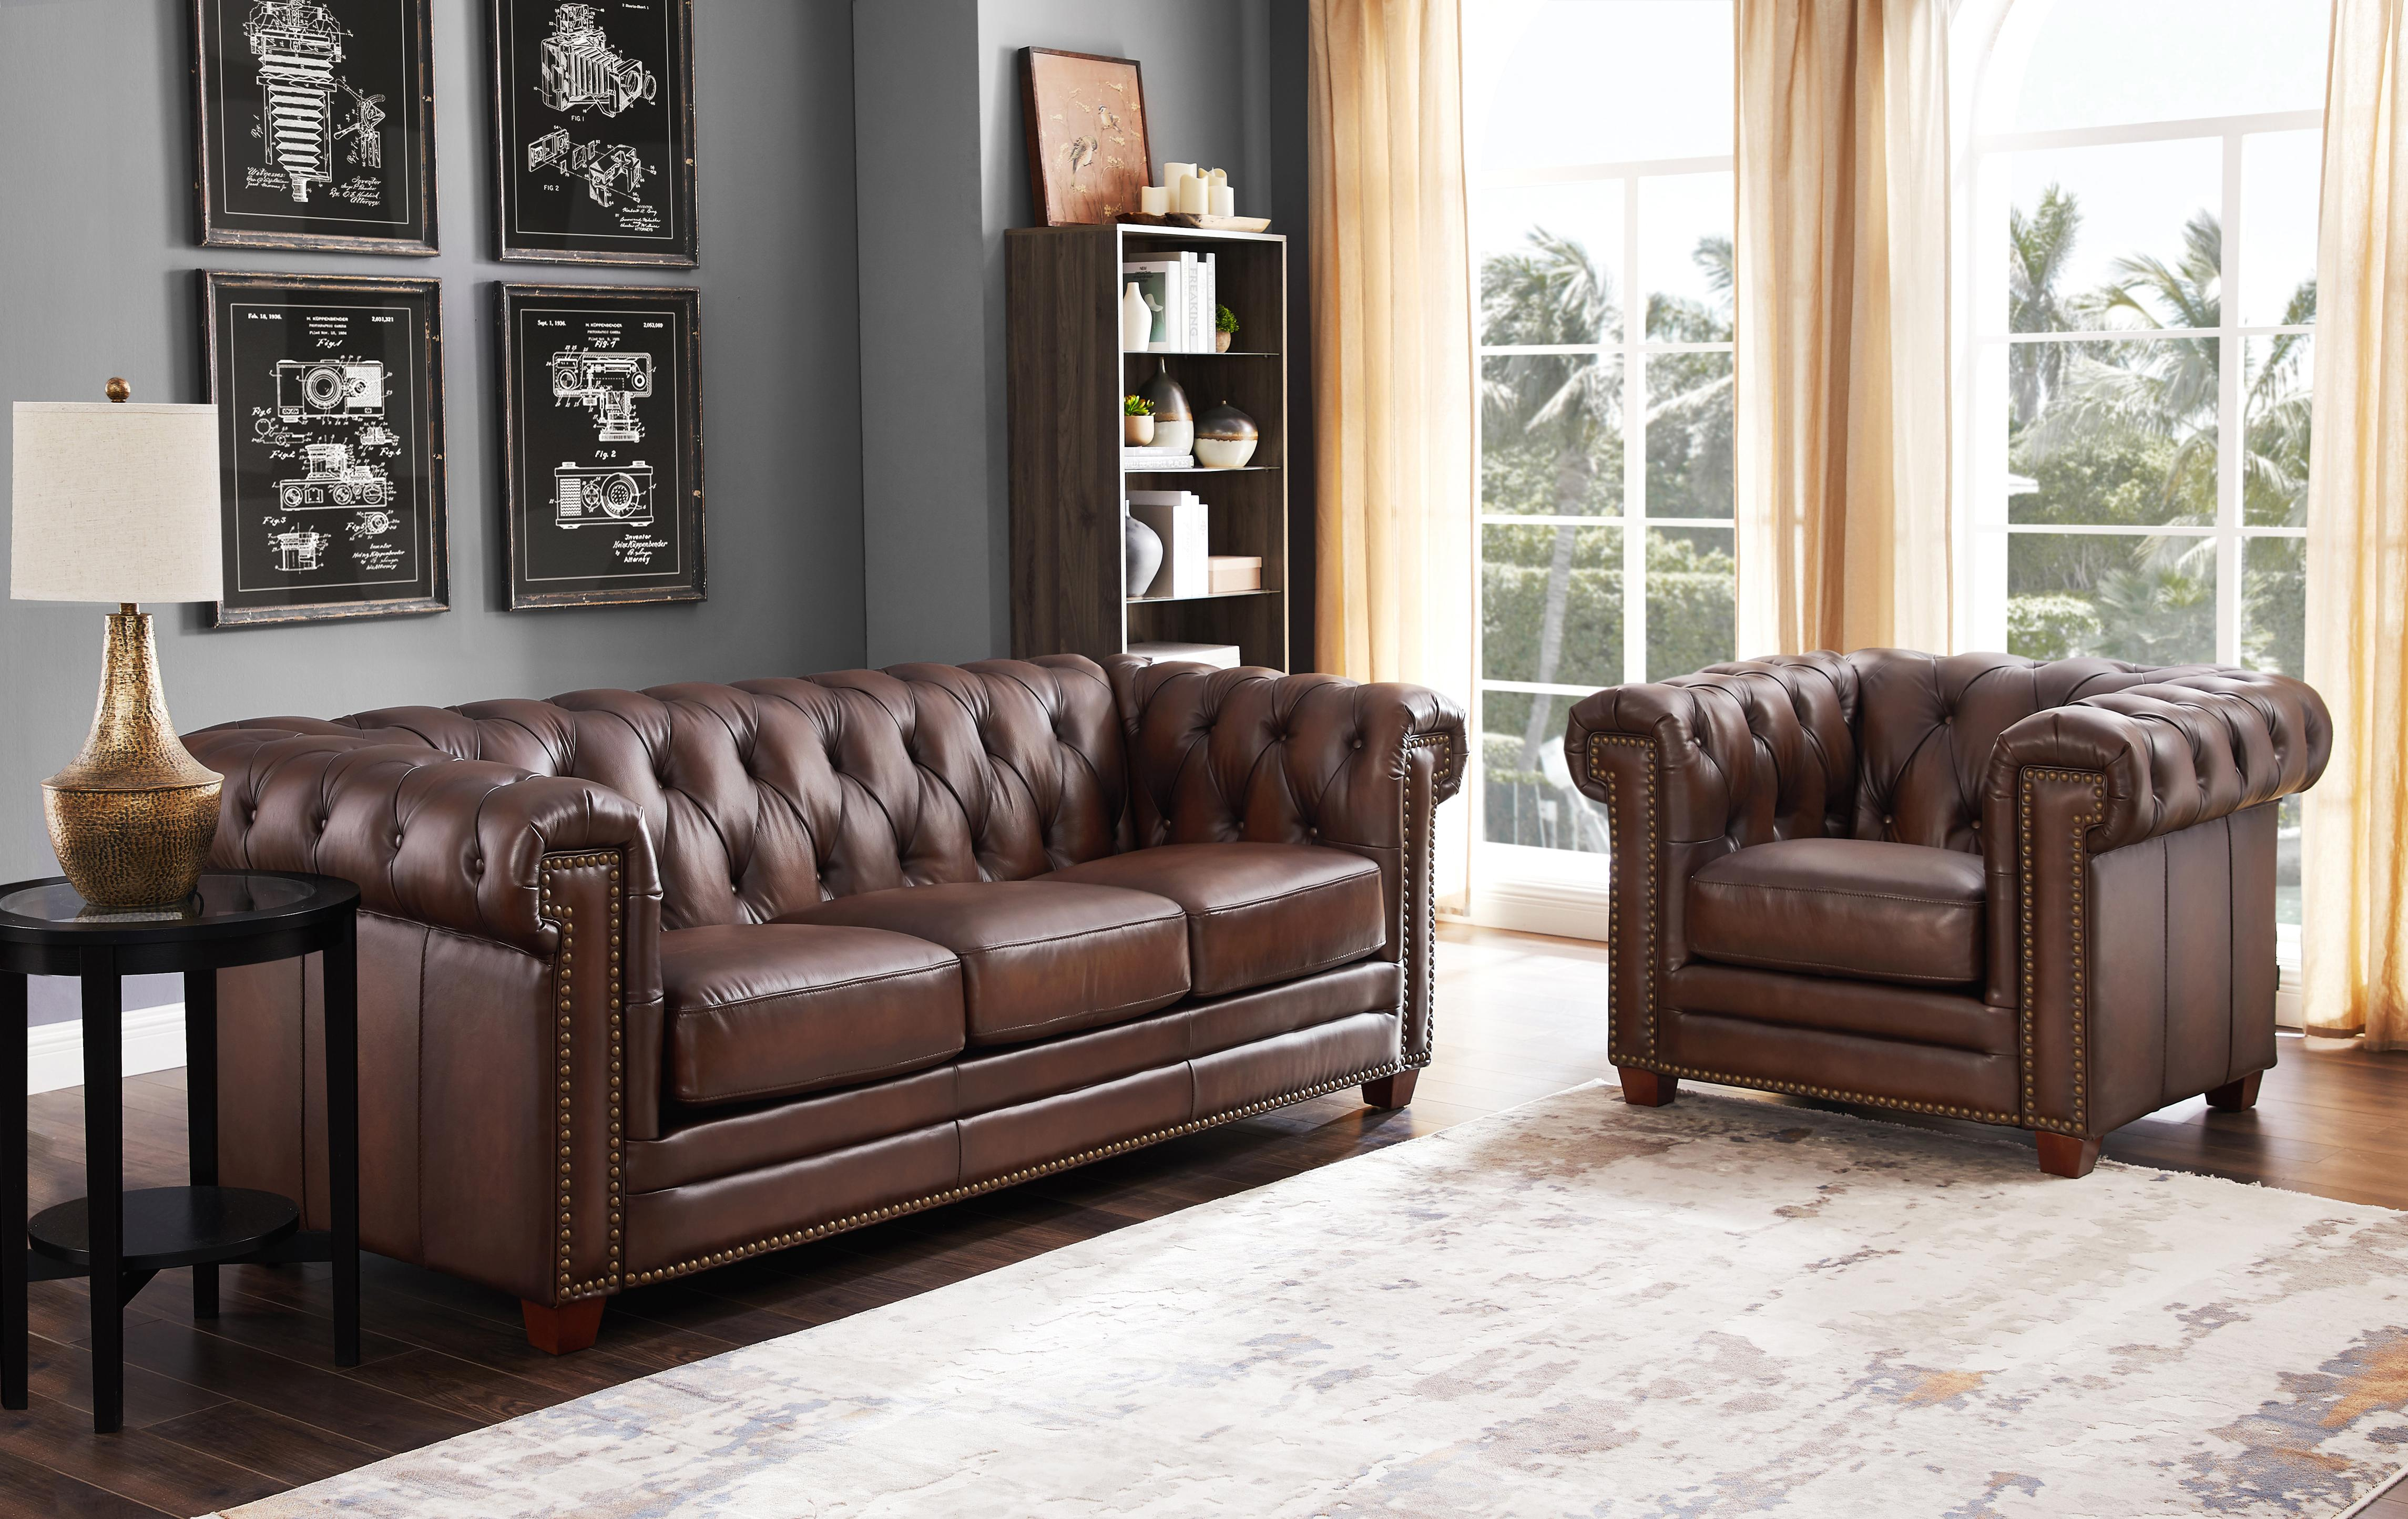 Hydeline Standwood Dark Brown Sofa and Chair Set